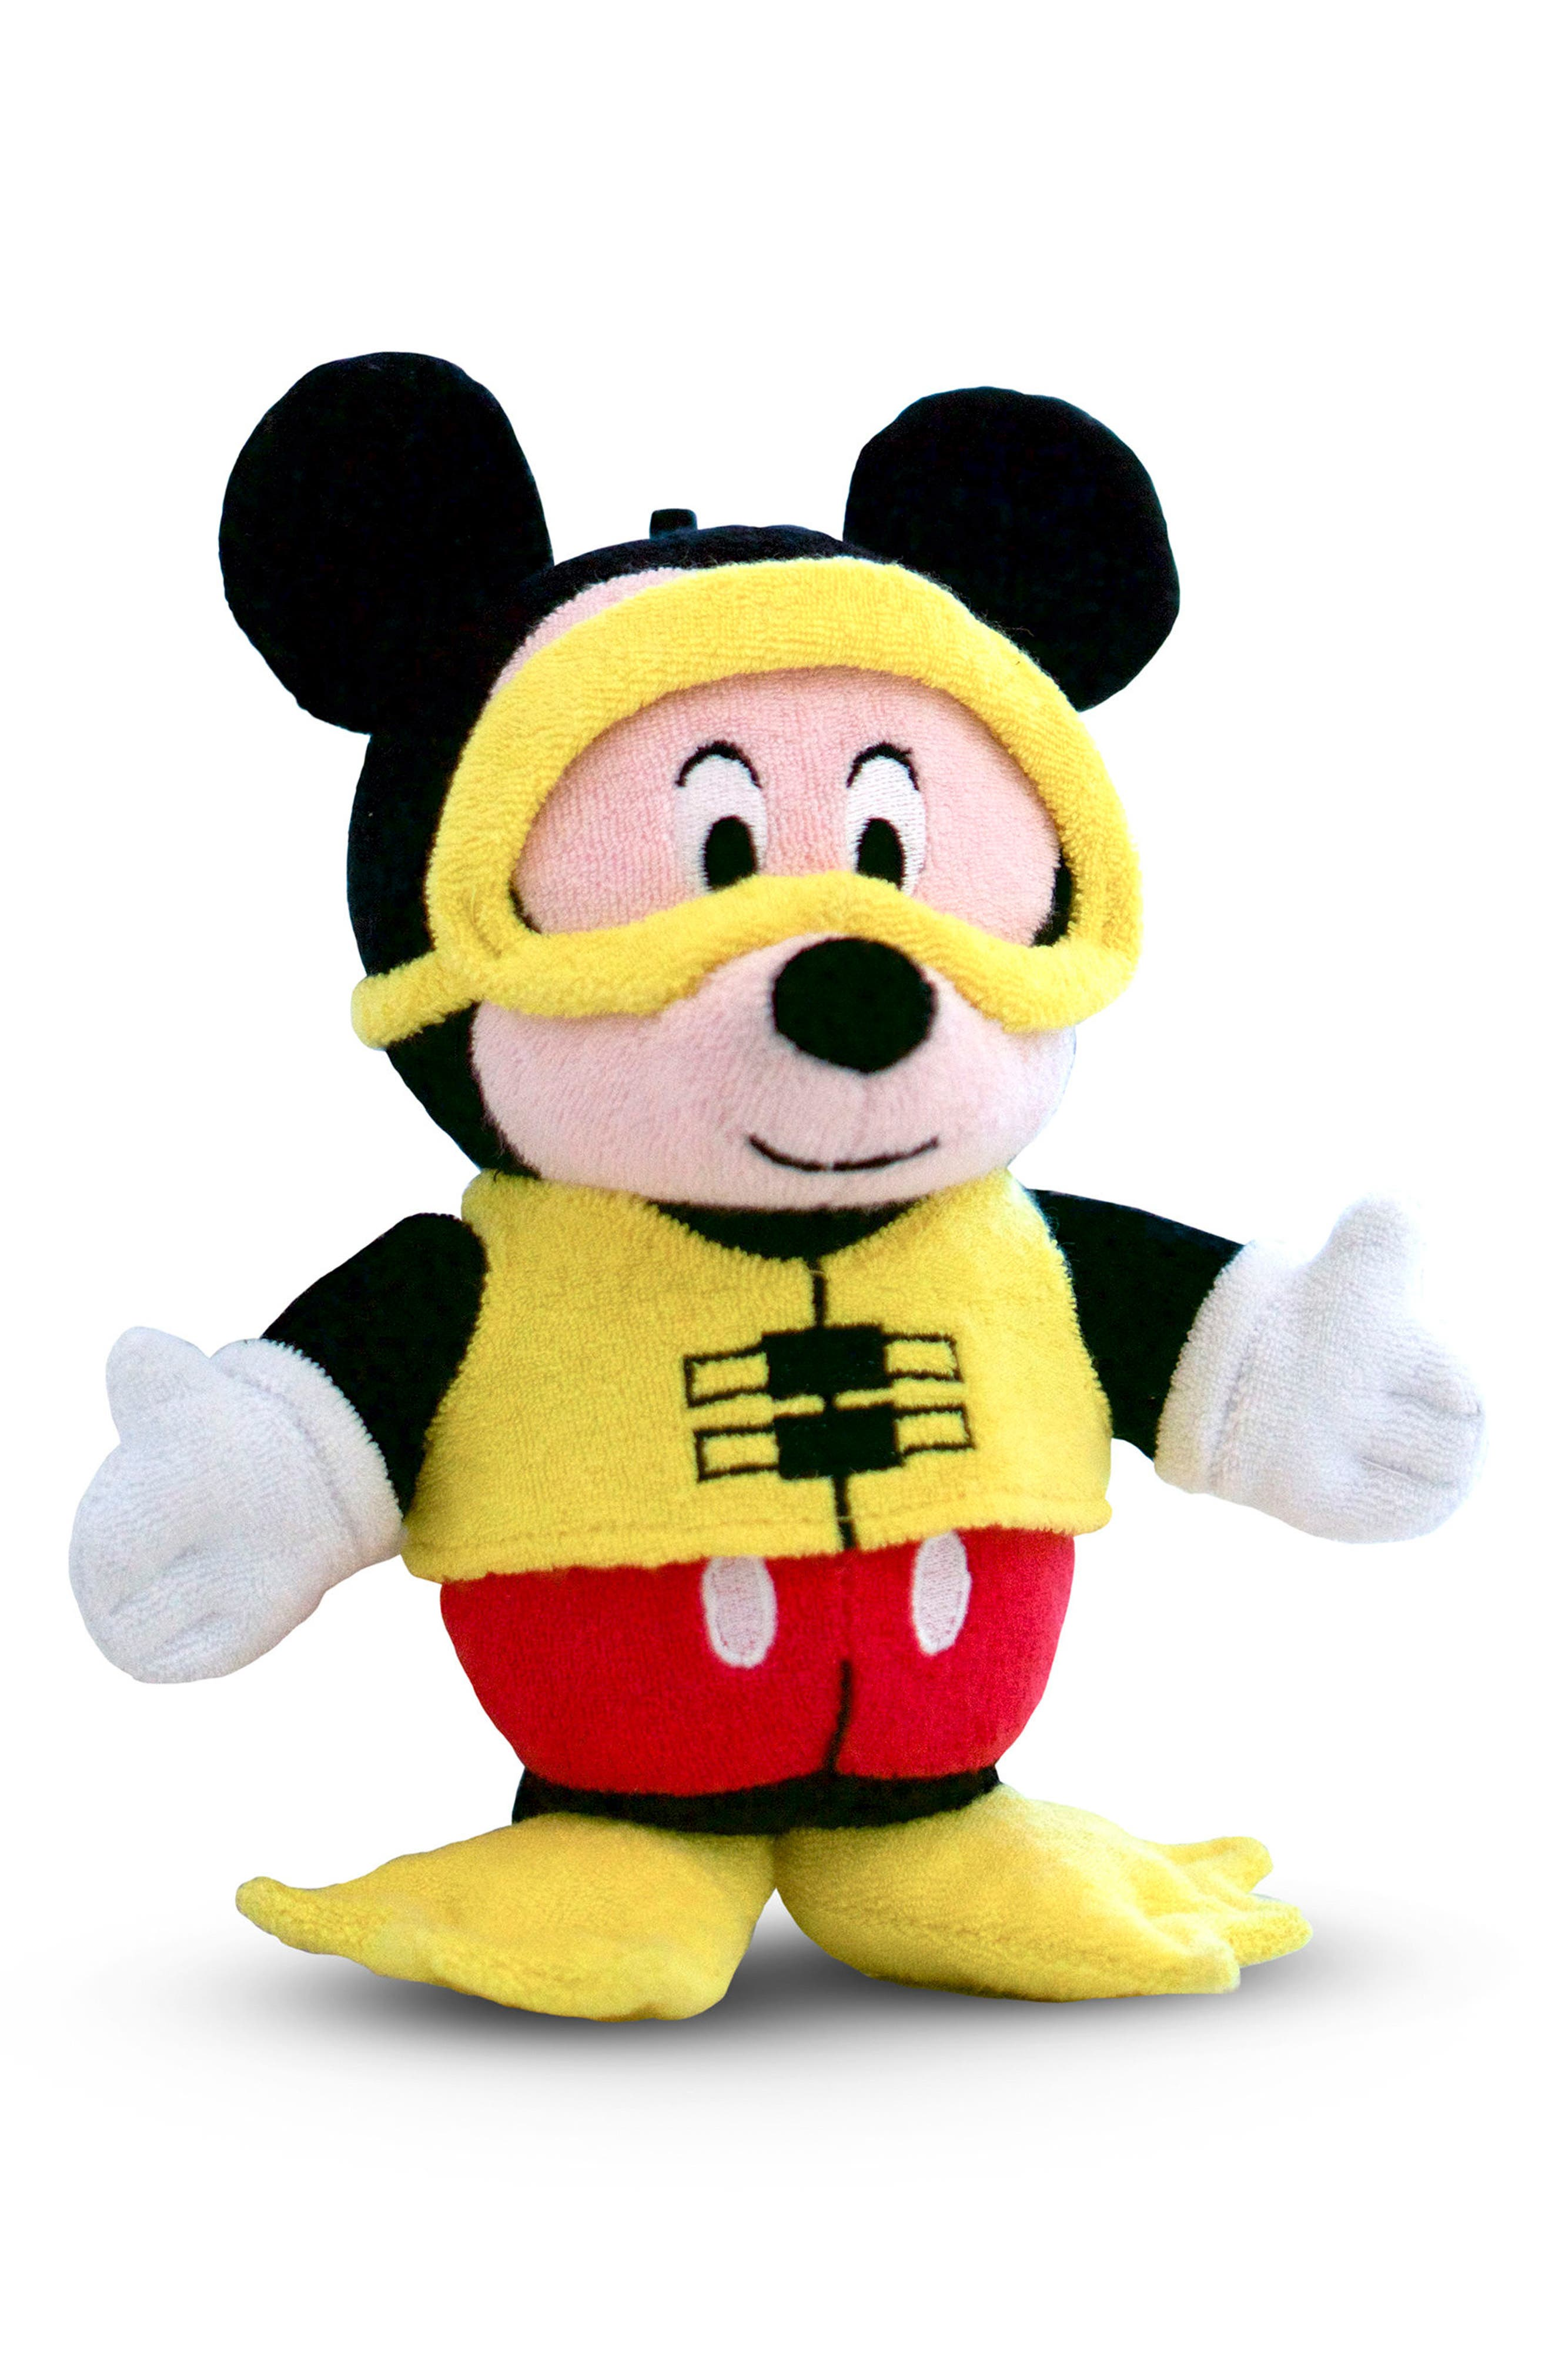 Disney<sup>®</sup> Antimicrobial Terry Cloth Bath Sponge,                             Main thumbnail 1, color,                             Mickey Mouse